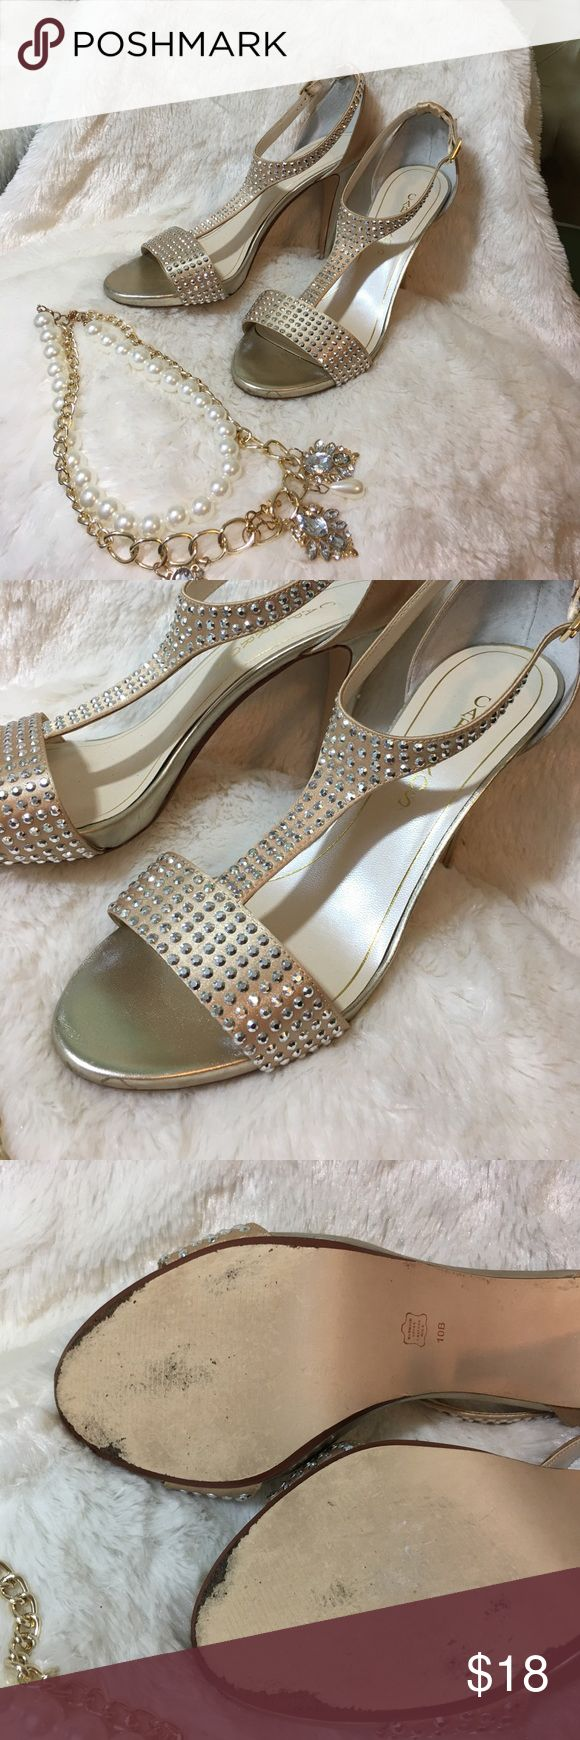 Gorgeous Gold Sparkly Shoes Sz 10 Gold sparkle shoes showing normal signs of wear to bottoms and a scratch on heel as pictured. Caparros Shoes Heels